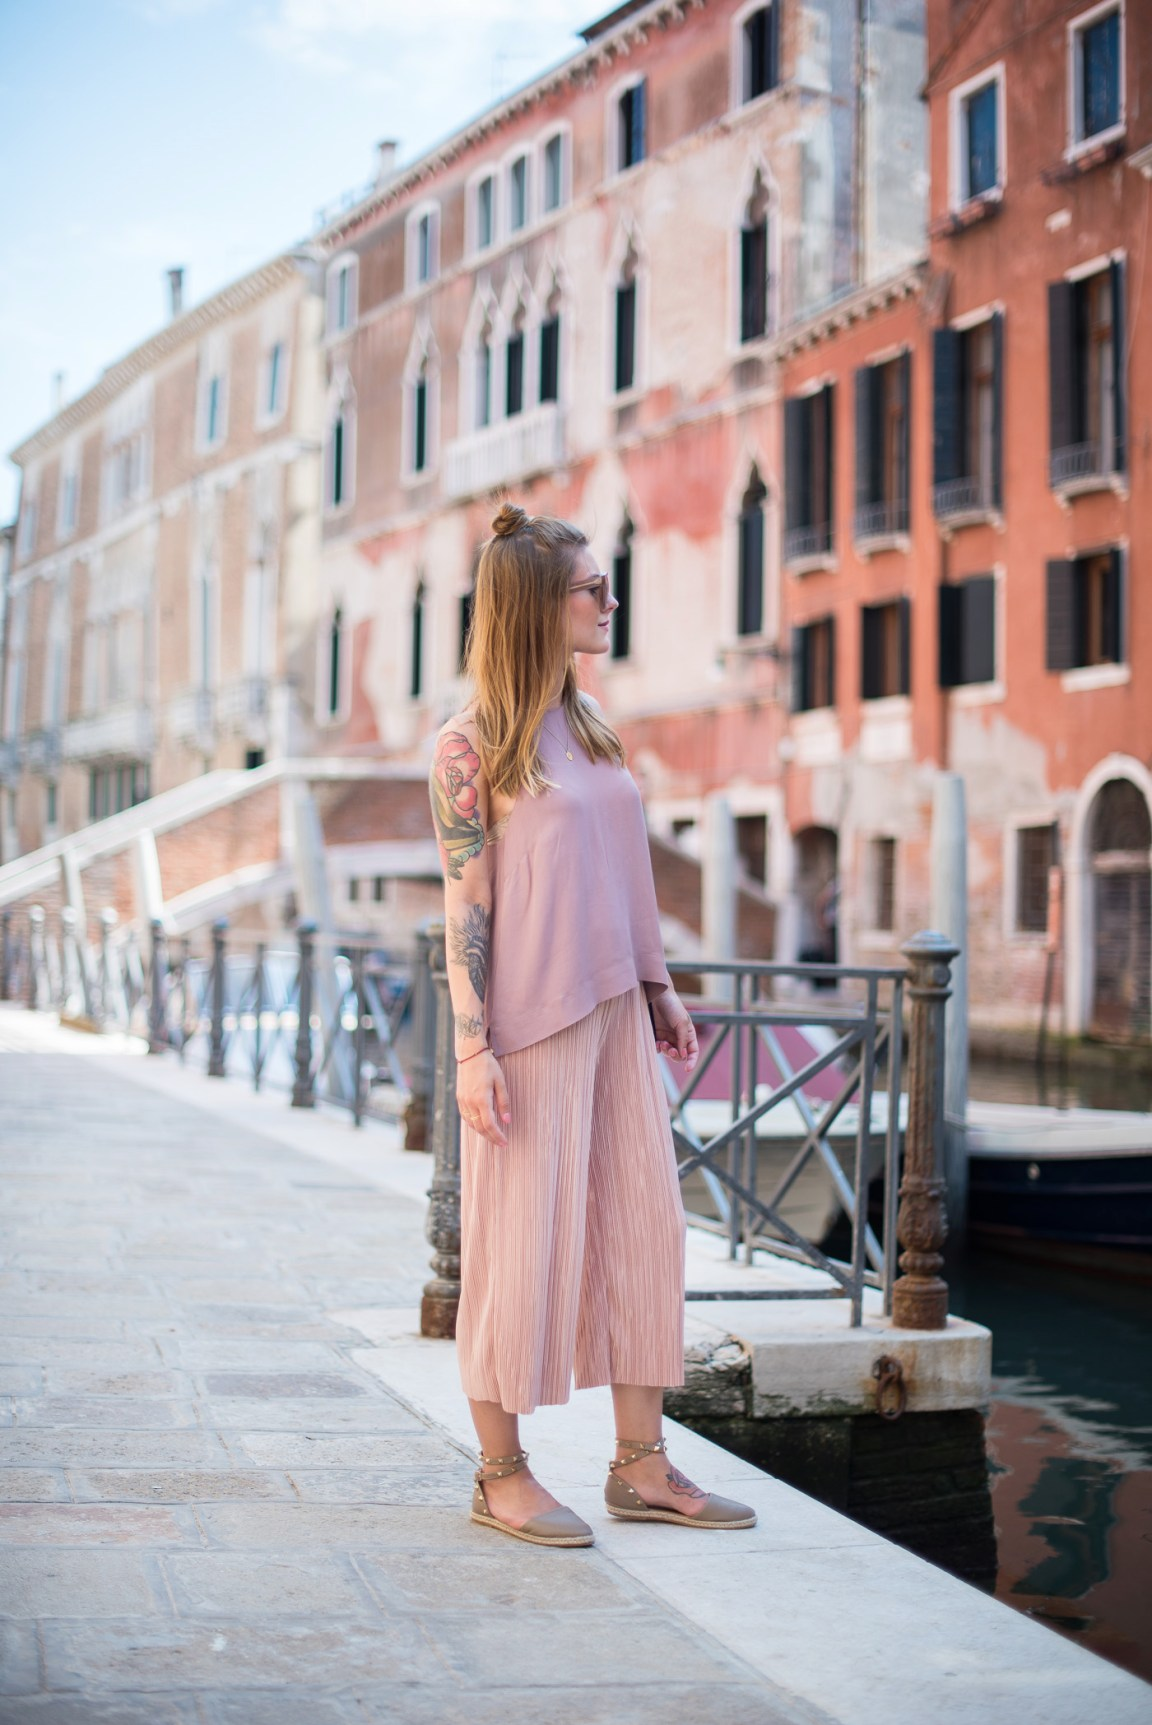 Candy_colors_culotte_outfit_in_Venezia_9